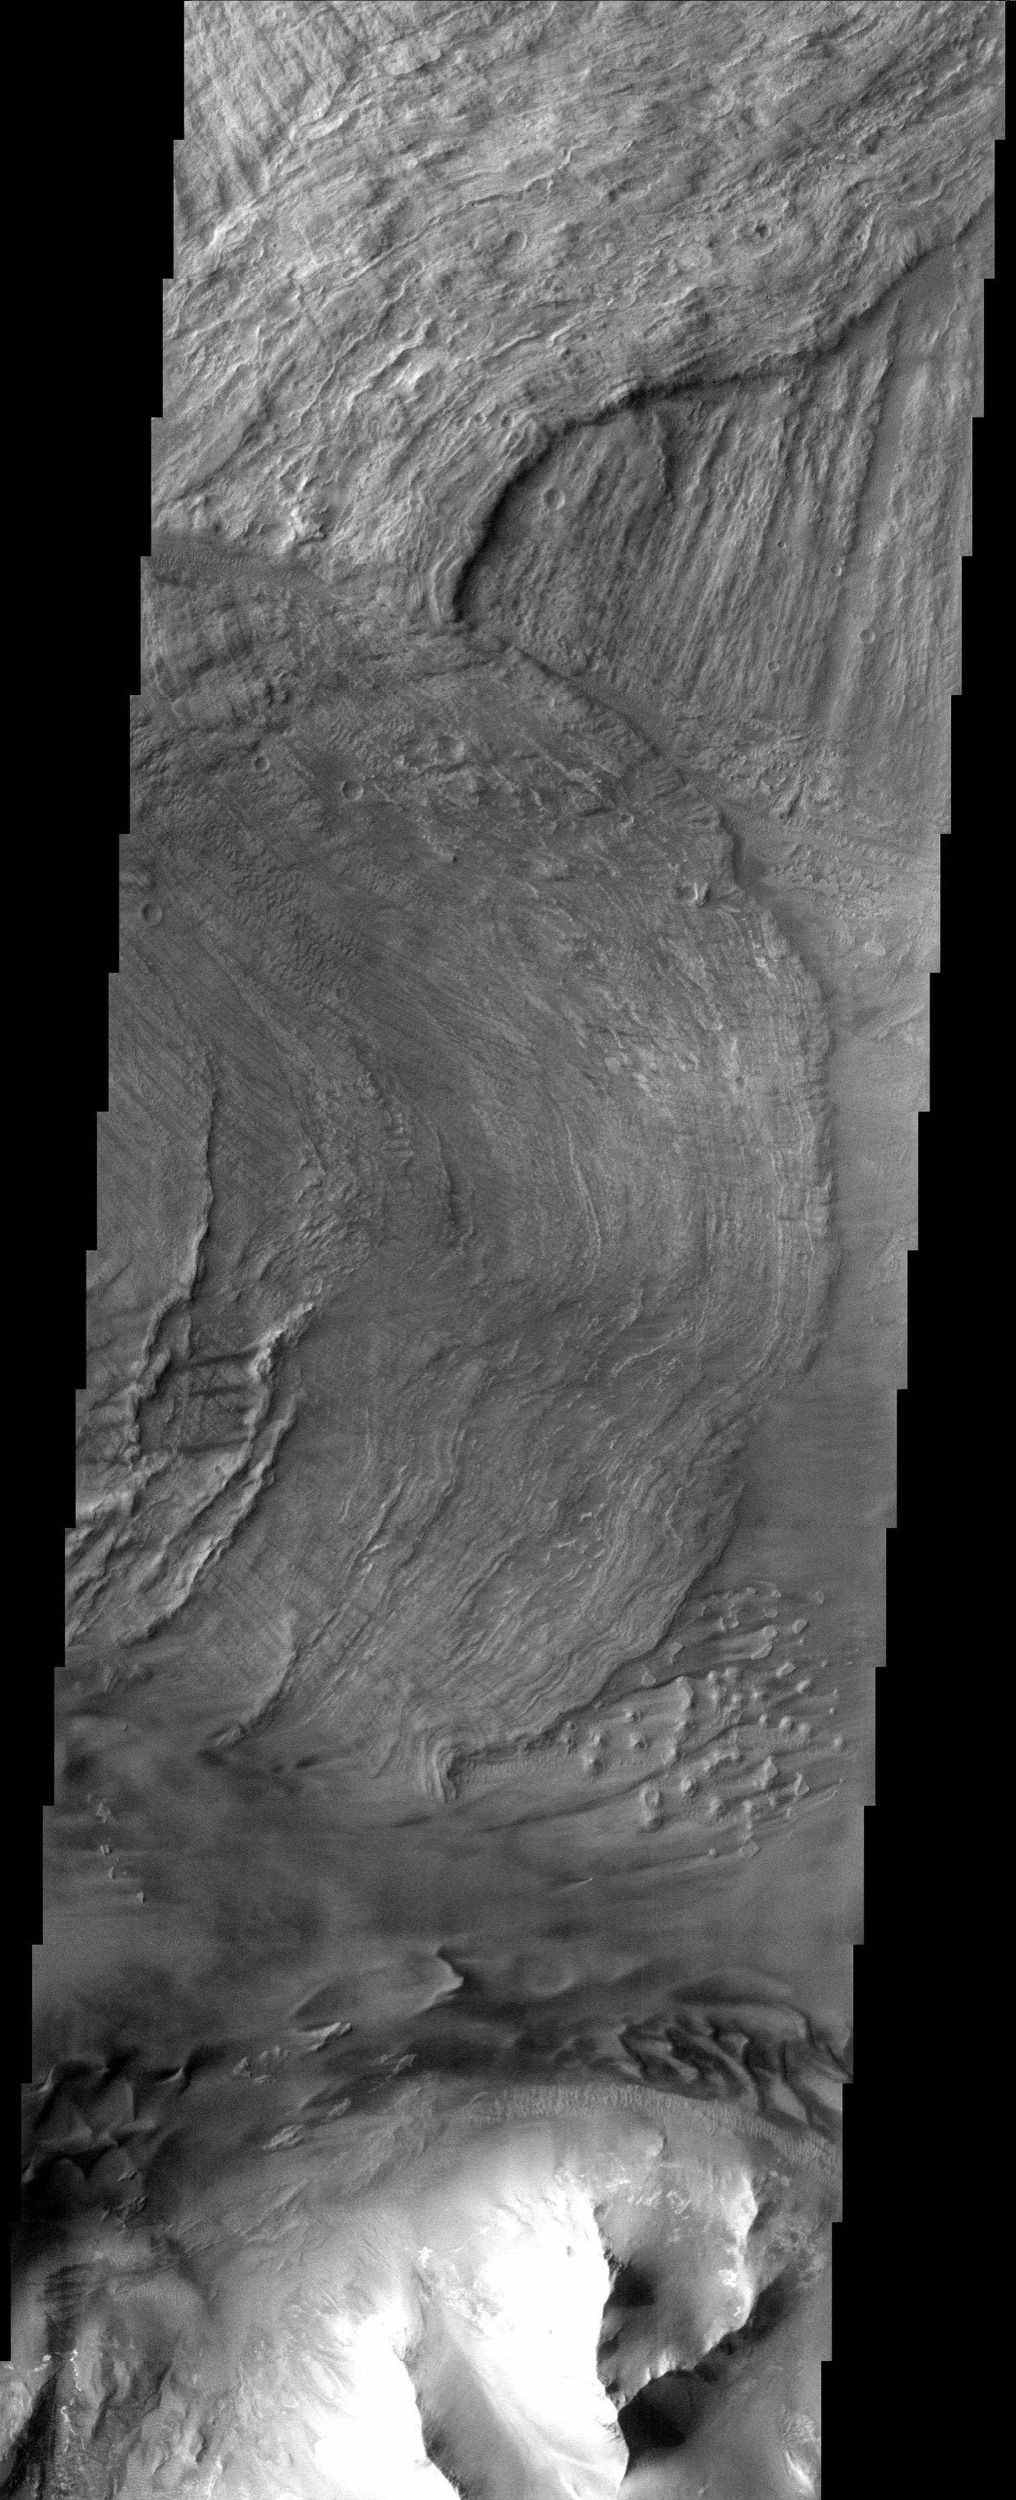 This canyon system imaged here by NASA's Mars Odyssey was named Valles Marineris in honor of its discoverer, NASA's Mariner 9 spacecraft. The image covers a portion of the canyon system called Melas Chasma.